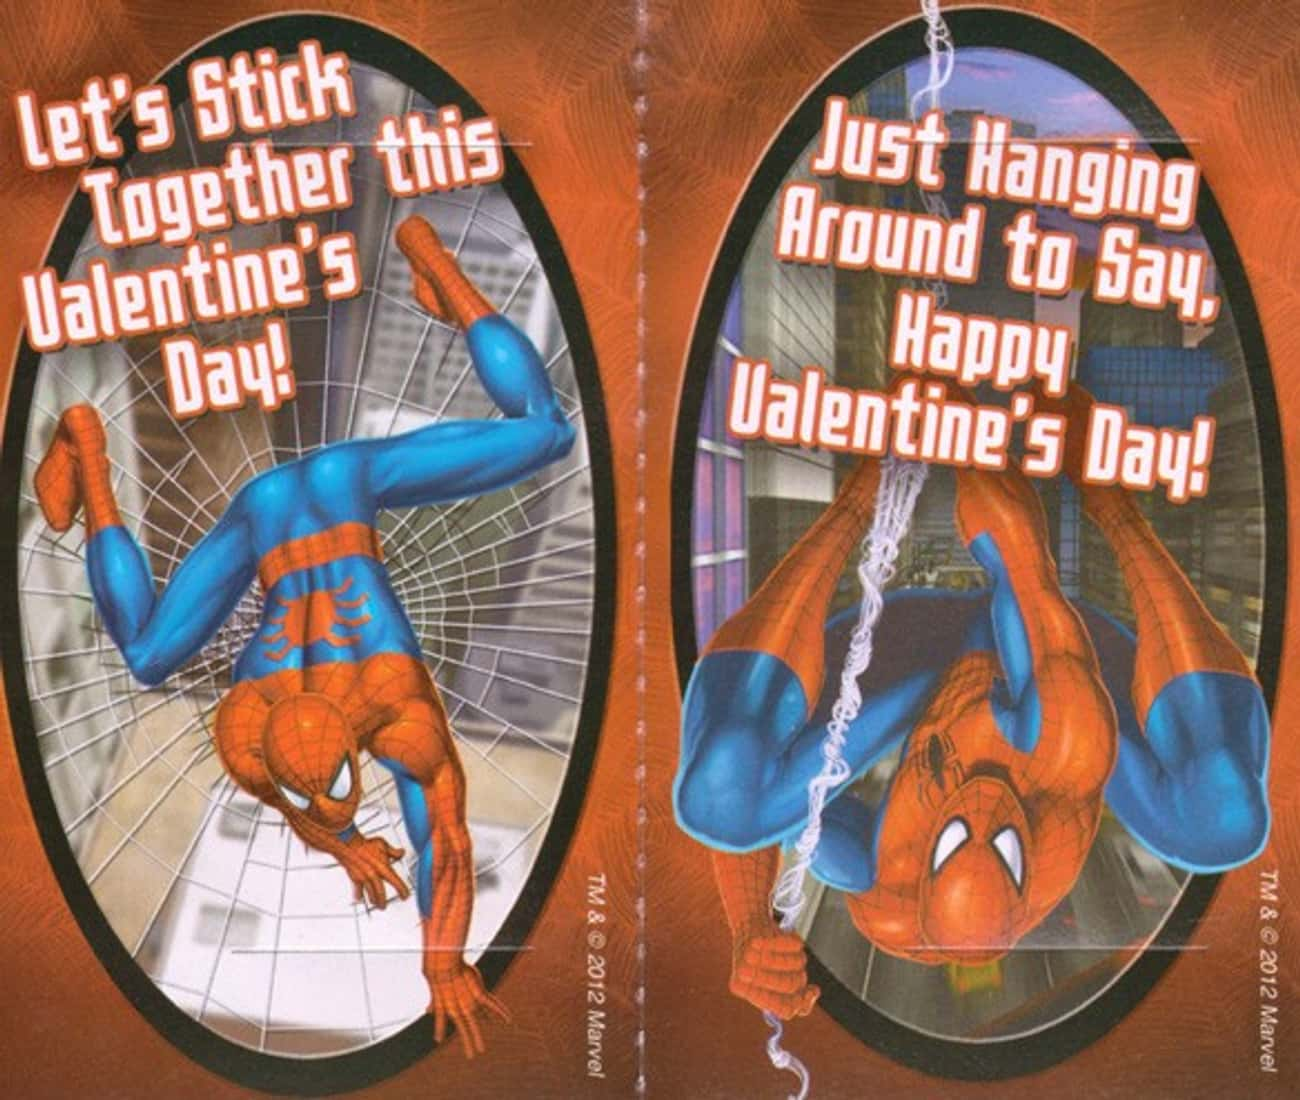 Spider-Man: Master of the Erot is listed (or ranked) 4 on the list Misguided Superhero Valentine's Day Cards